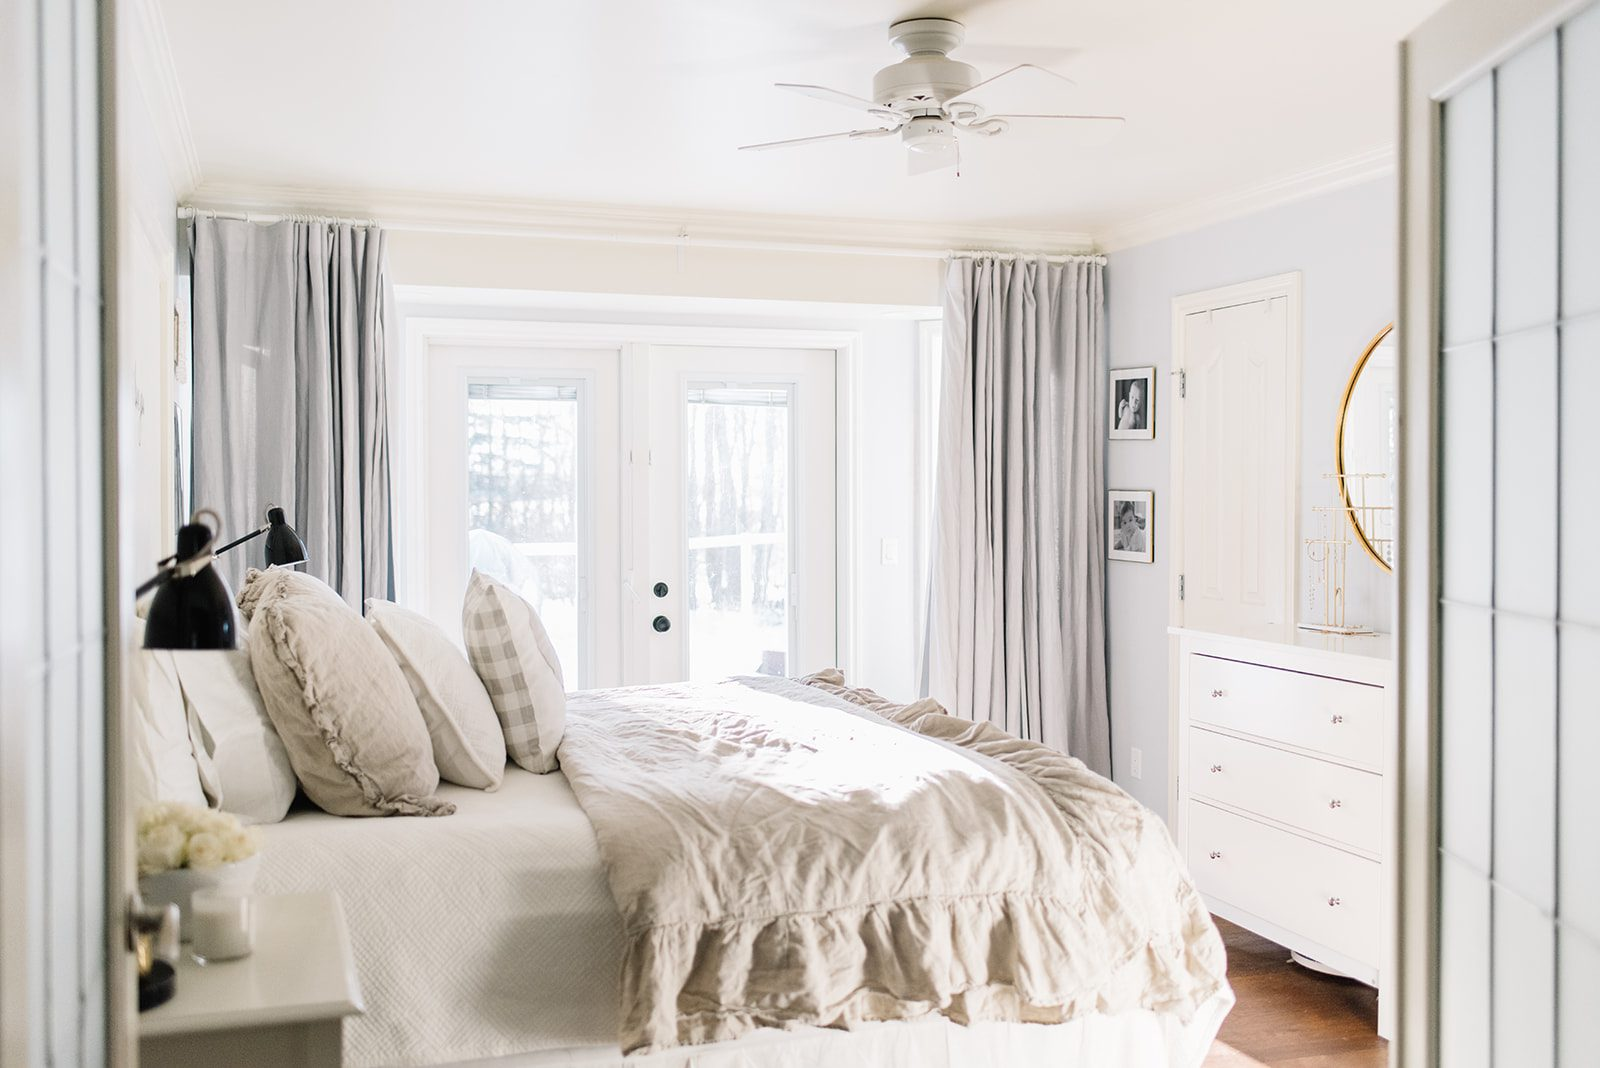 bedroom with king sized bed and ruffled duvet cover